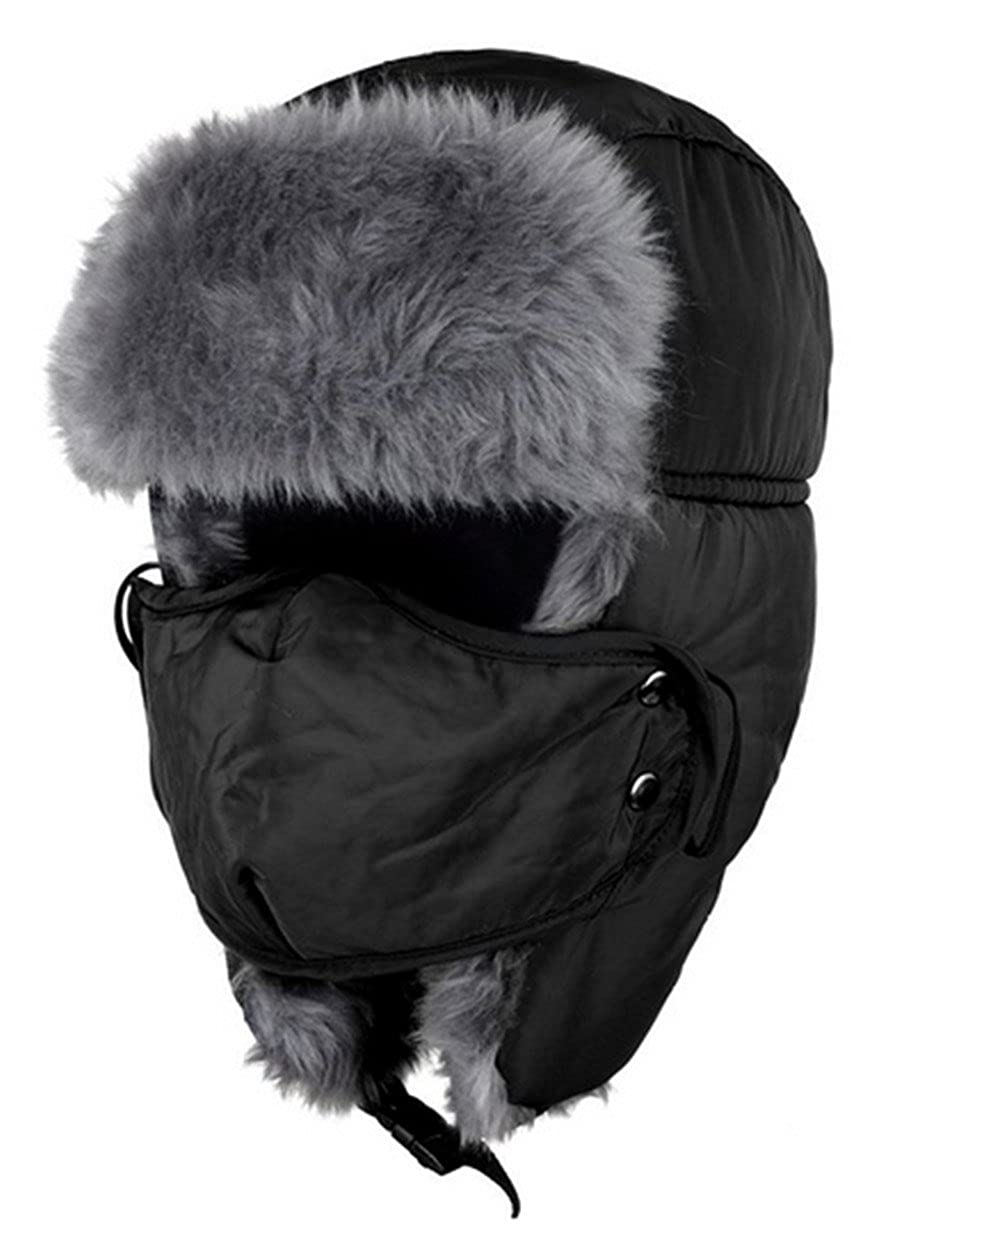 [Black Friday promotion]Oumosi Unisex Nylon Russian Style Winter Ear Flap Hat-Black A03FS078018-H3